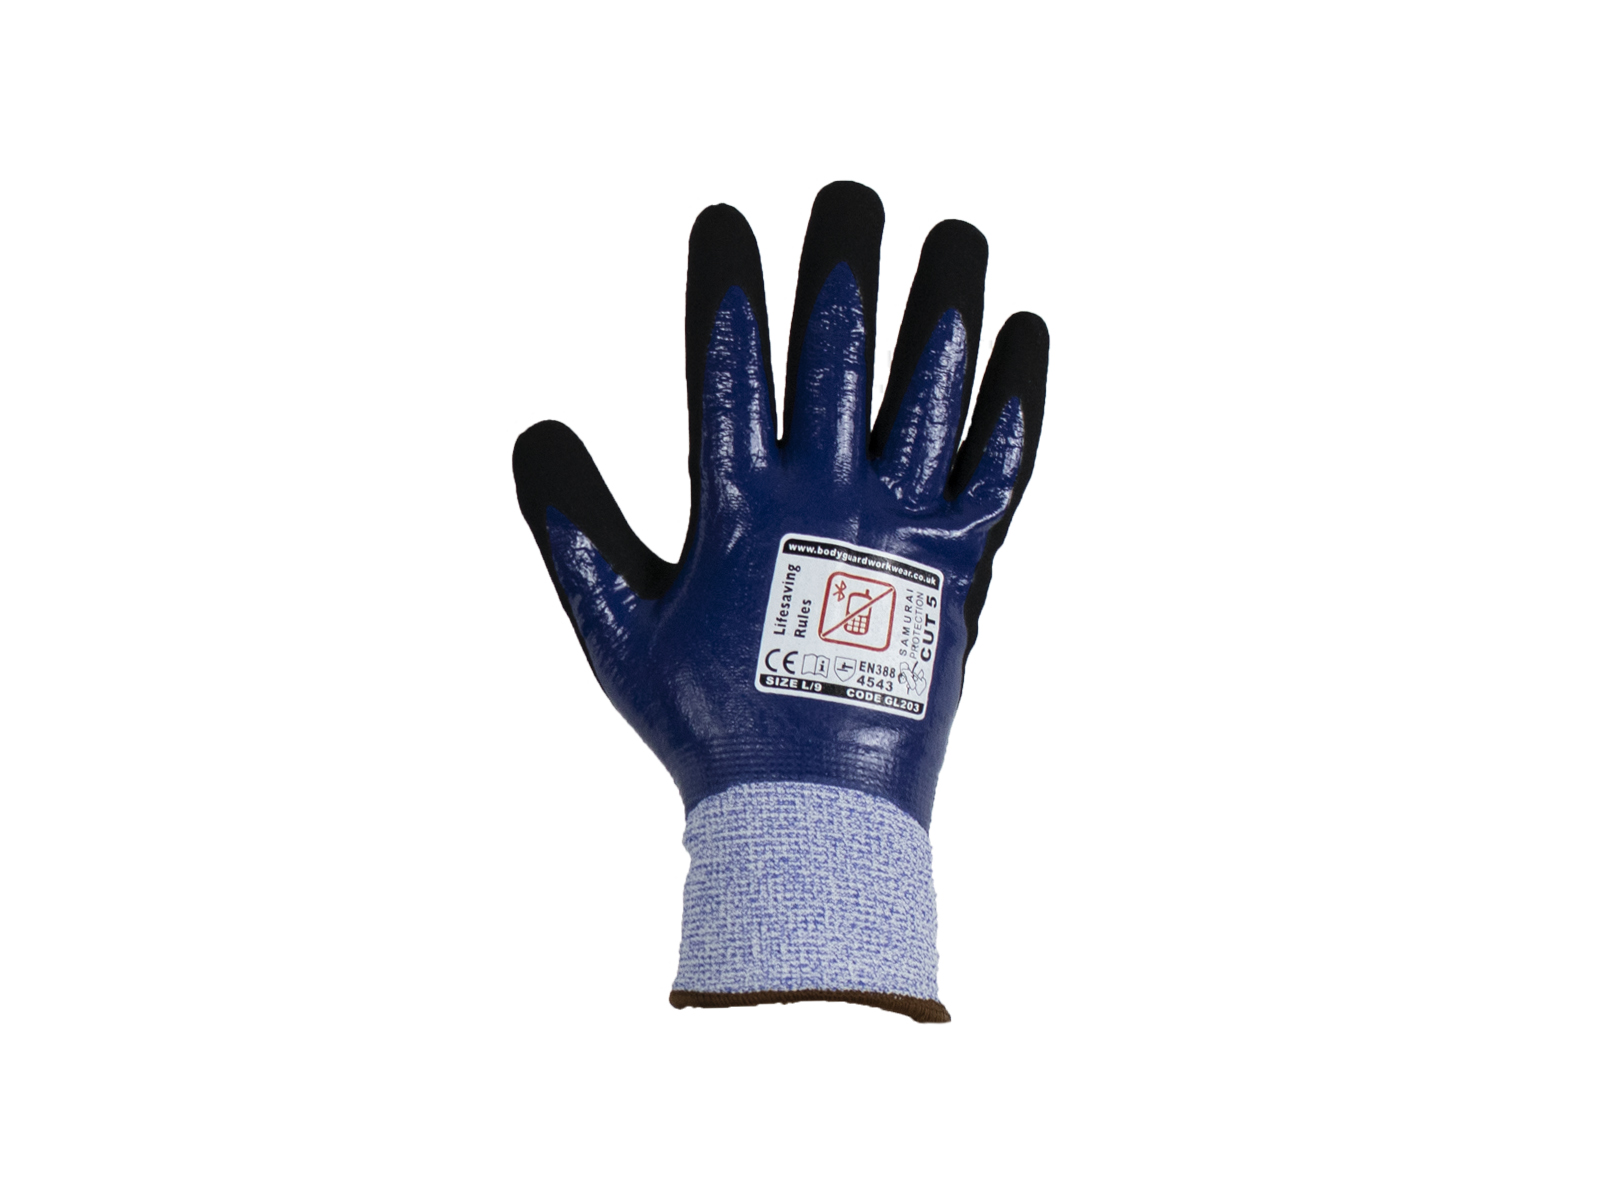 Samurai Thermo Wet Cut 5 Safety glove w/ Fleece Liner